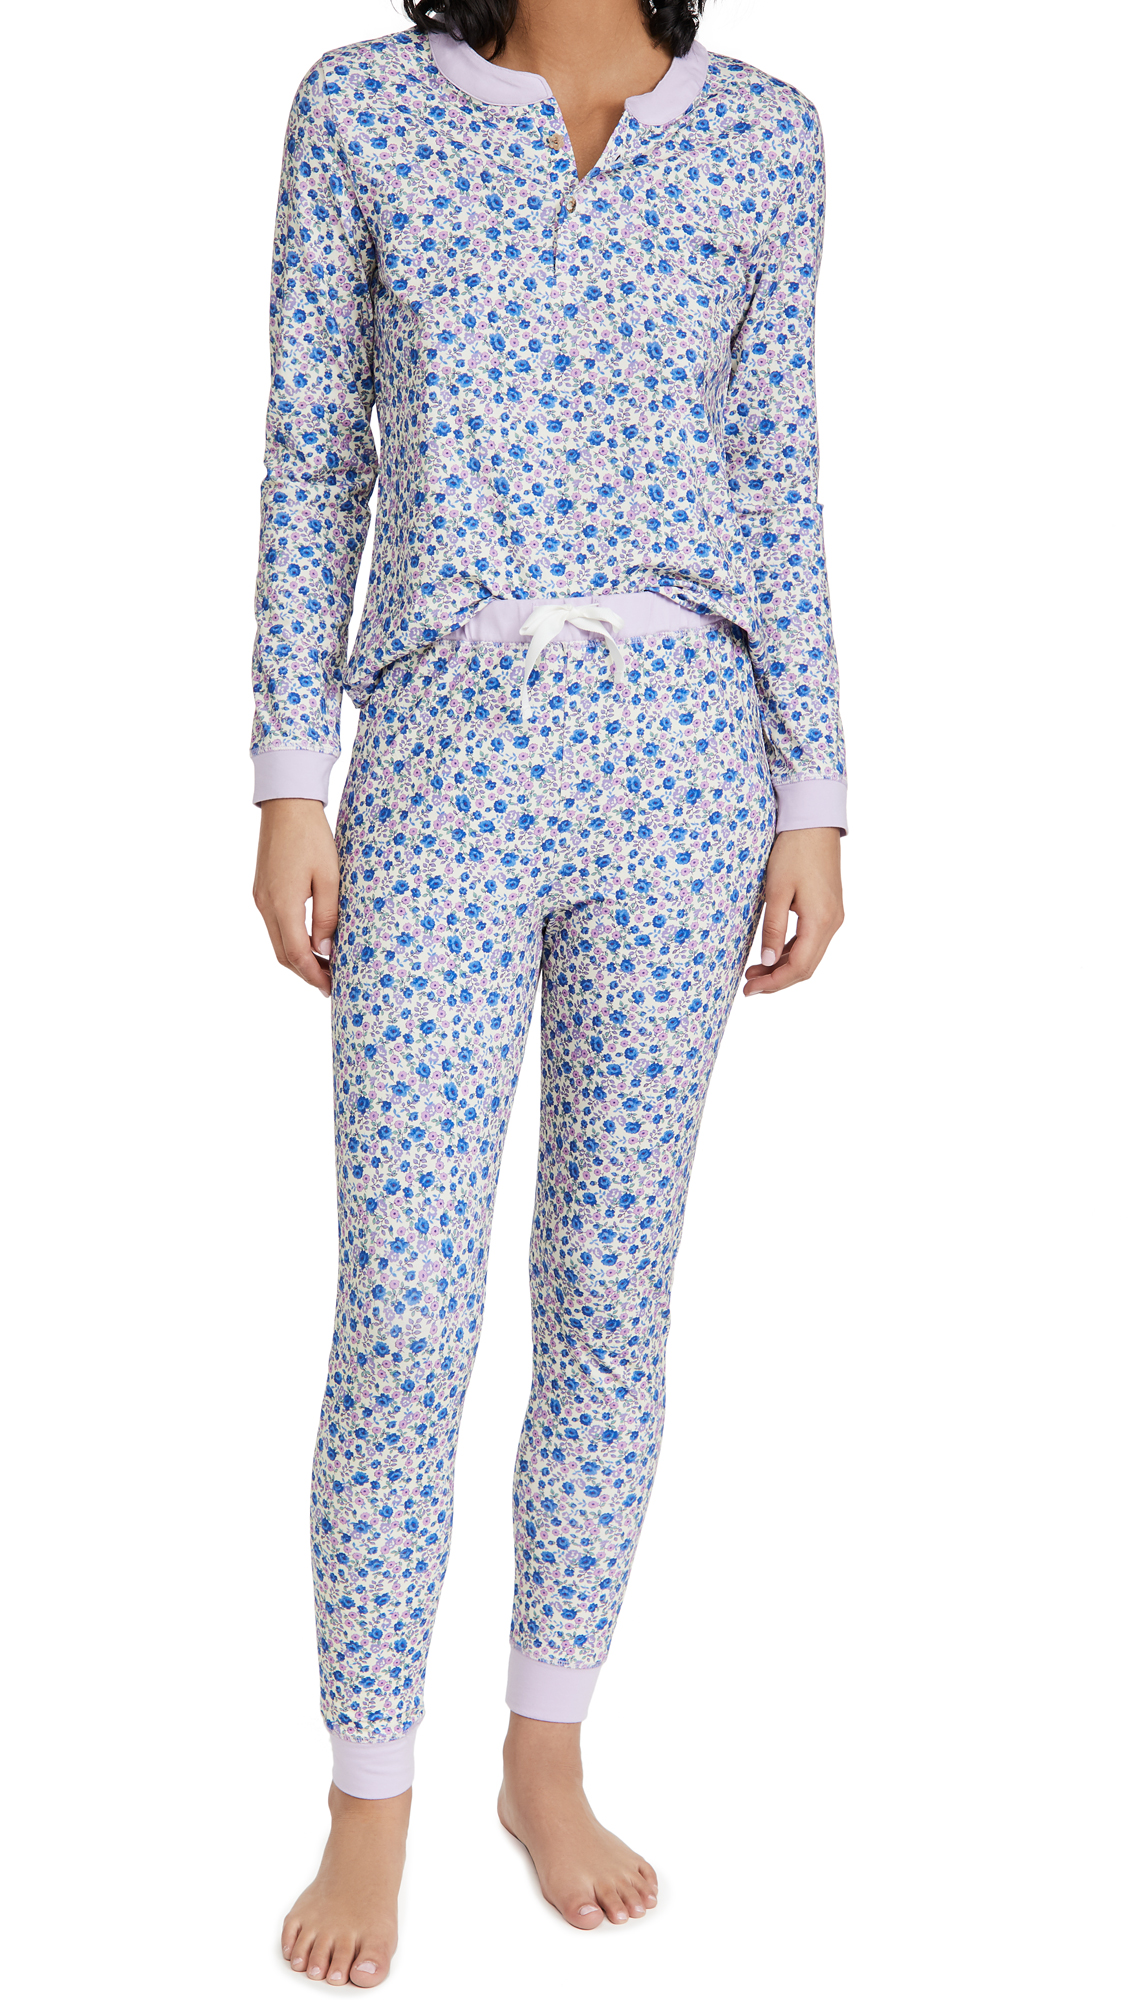 Morgan Lane x LOVESHACKFANCY Kaia PJ Set